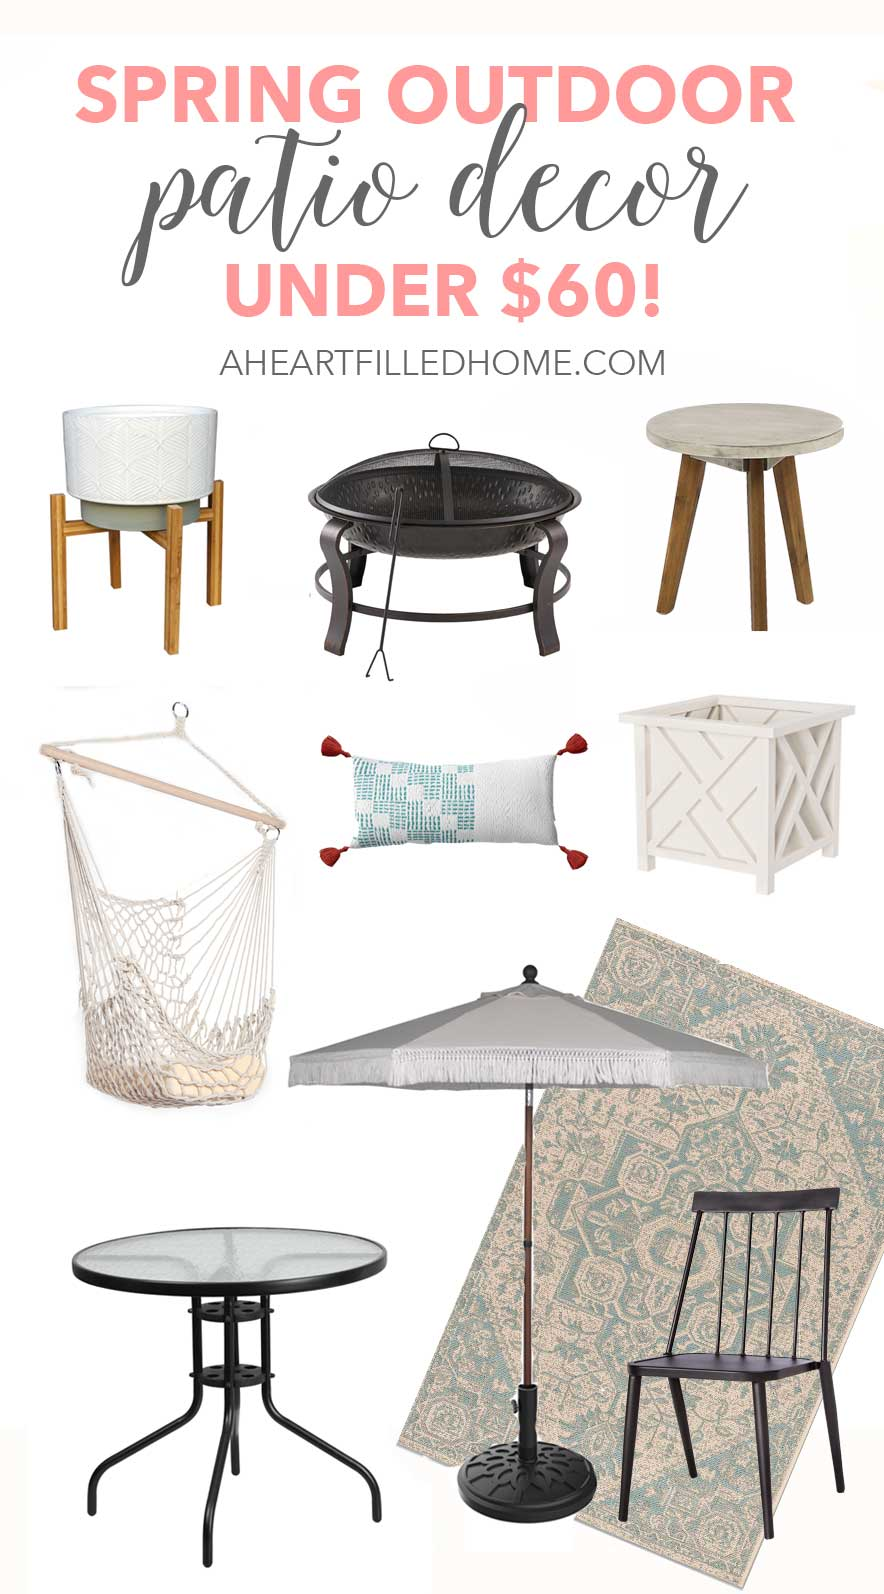 Spring Outdoor Patio Decor under $60! These budget friendly outdoor decor items will be perfect for a backyard makeover! from A Heart Filled Home